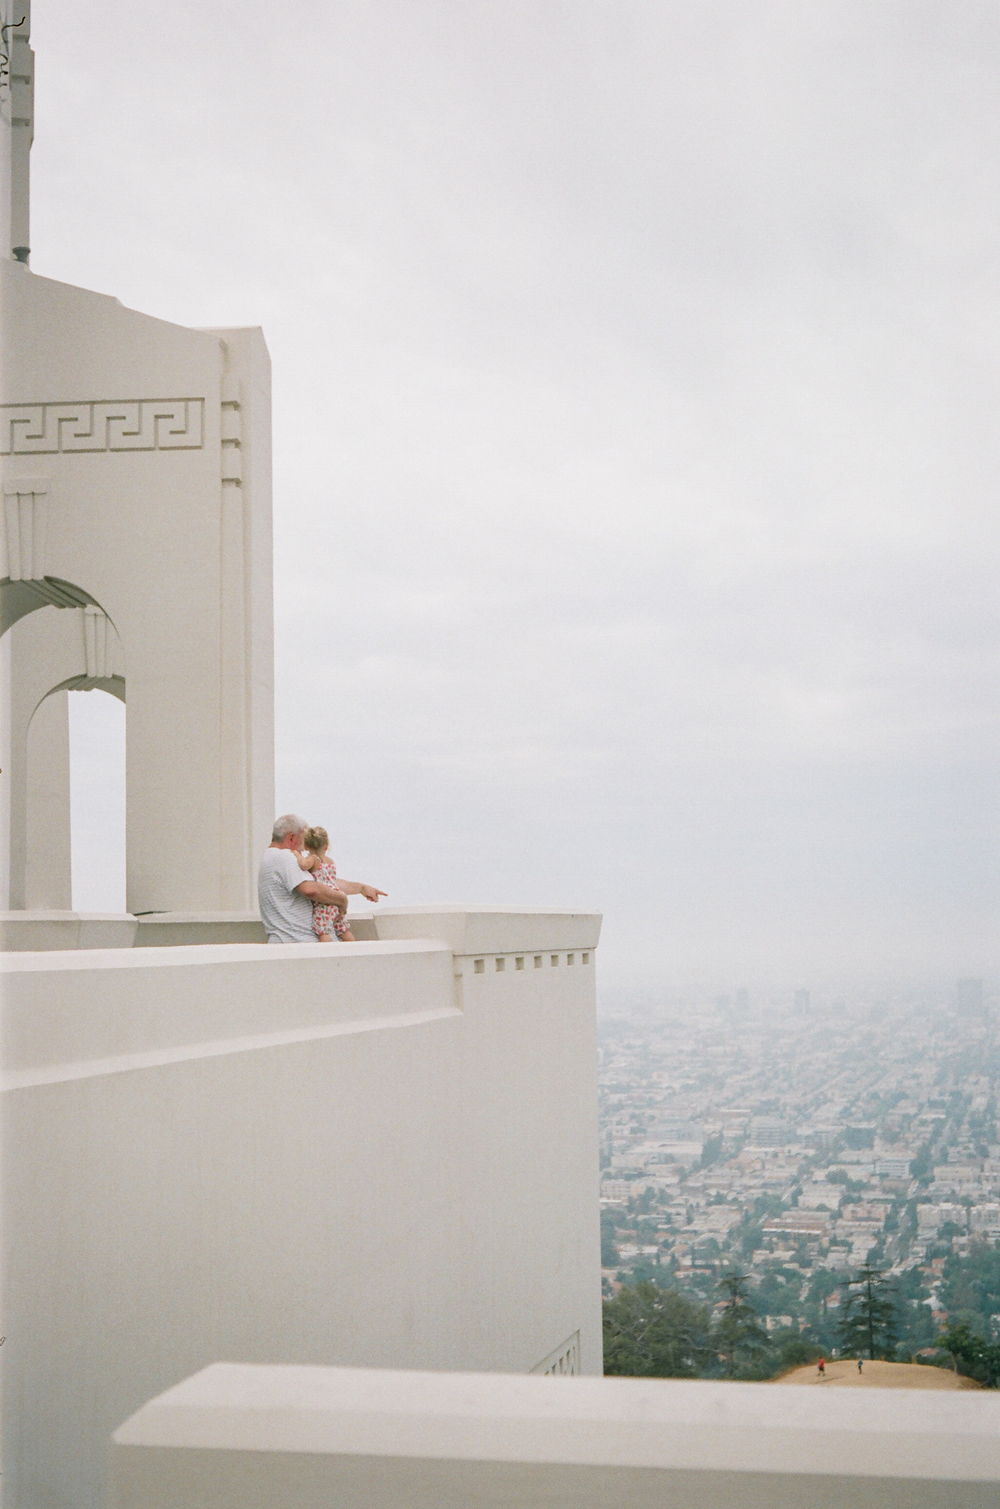 griffith park observatory | lily glass